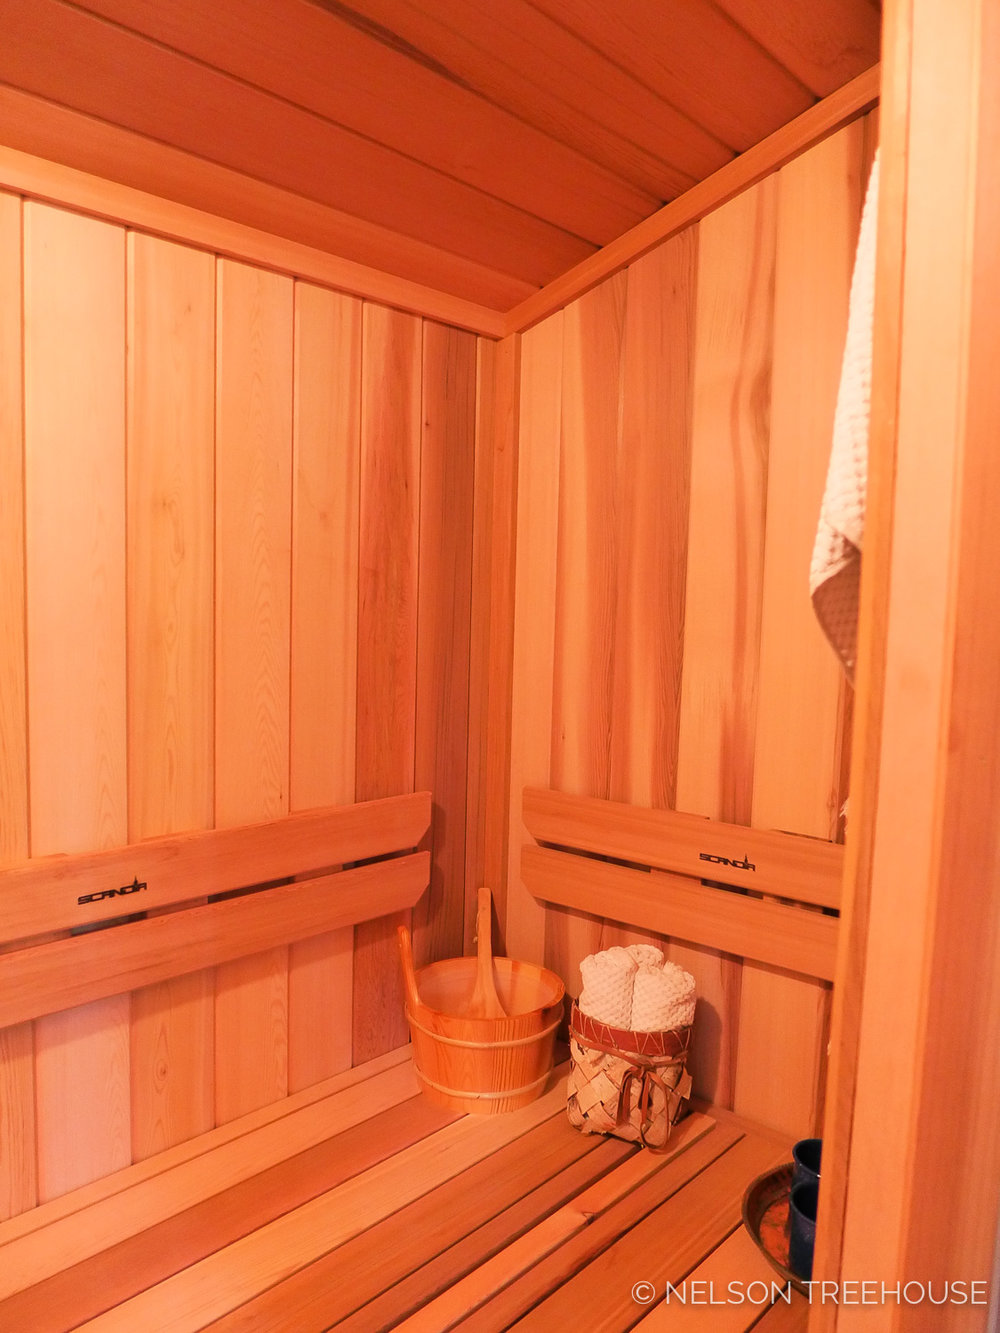 Alaskan Sauna Hut - Sauna Room view 2 - Nelson Treehouse